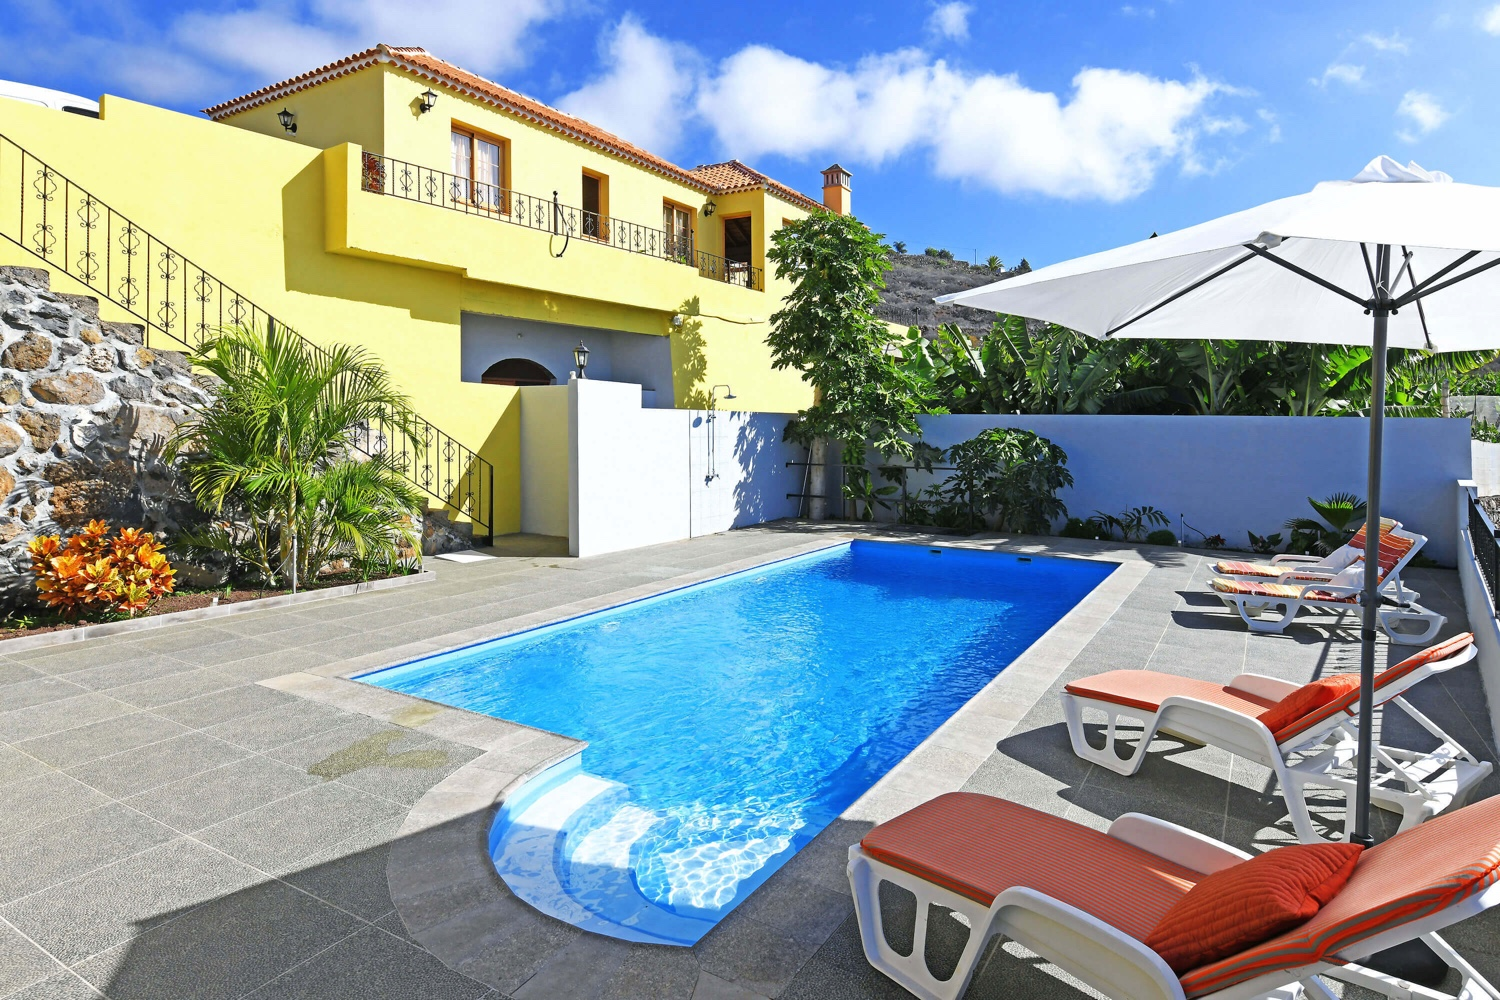 Holiday house with typical Canarian style, fantastic views of the sea and mountains and a beautiful pool area with a perfectly equipped barbecue pavilion